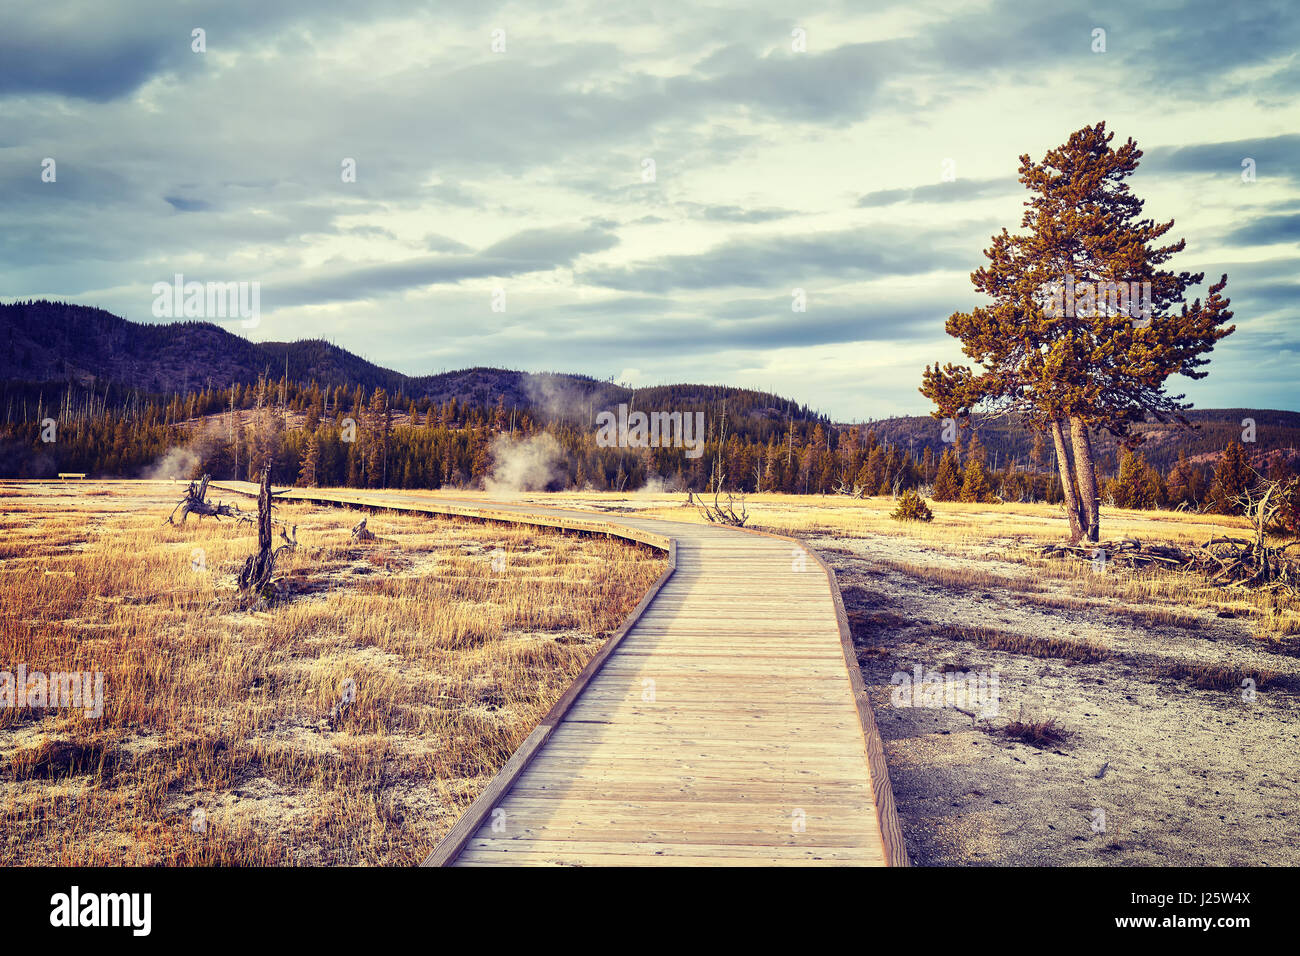 Tons Vintage wooden path dans le Parc National de Yellowstone, Wyoming, USA. Photo Stock